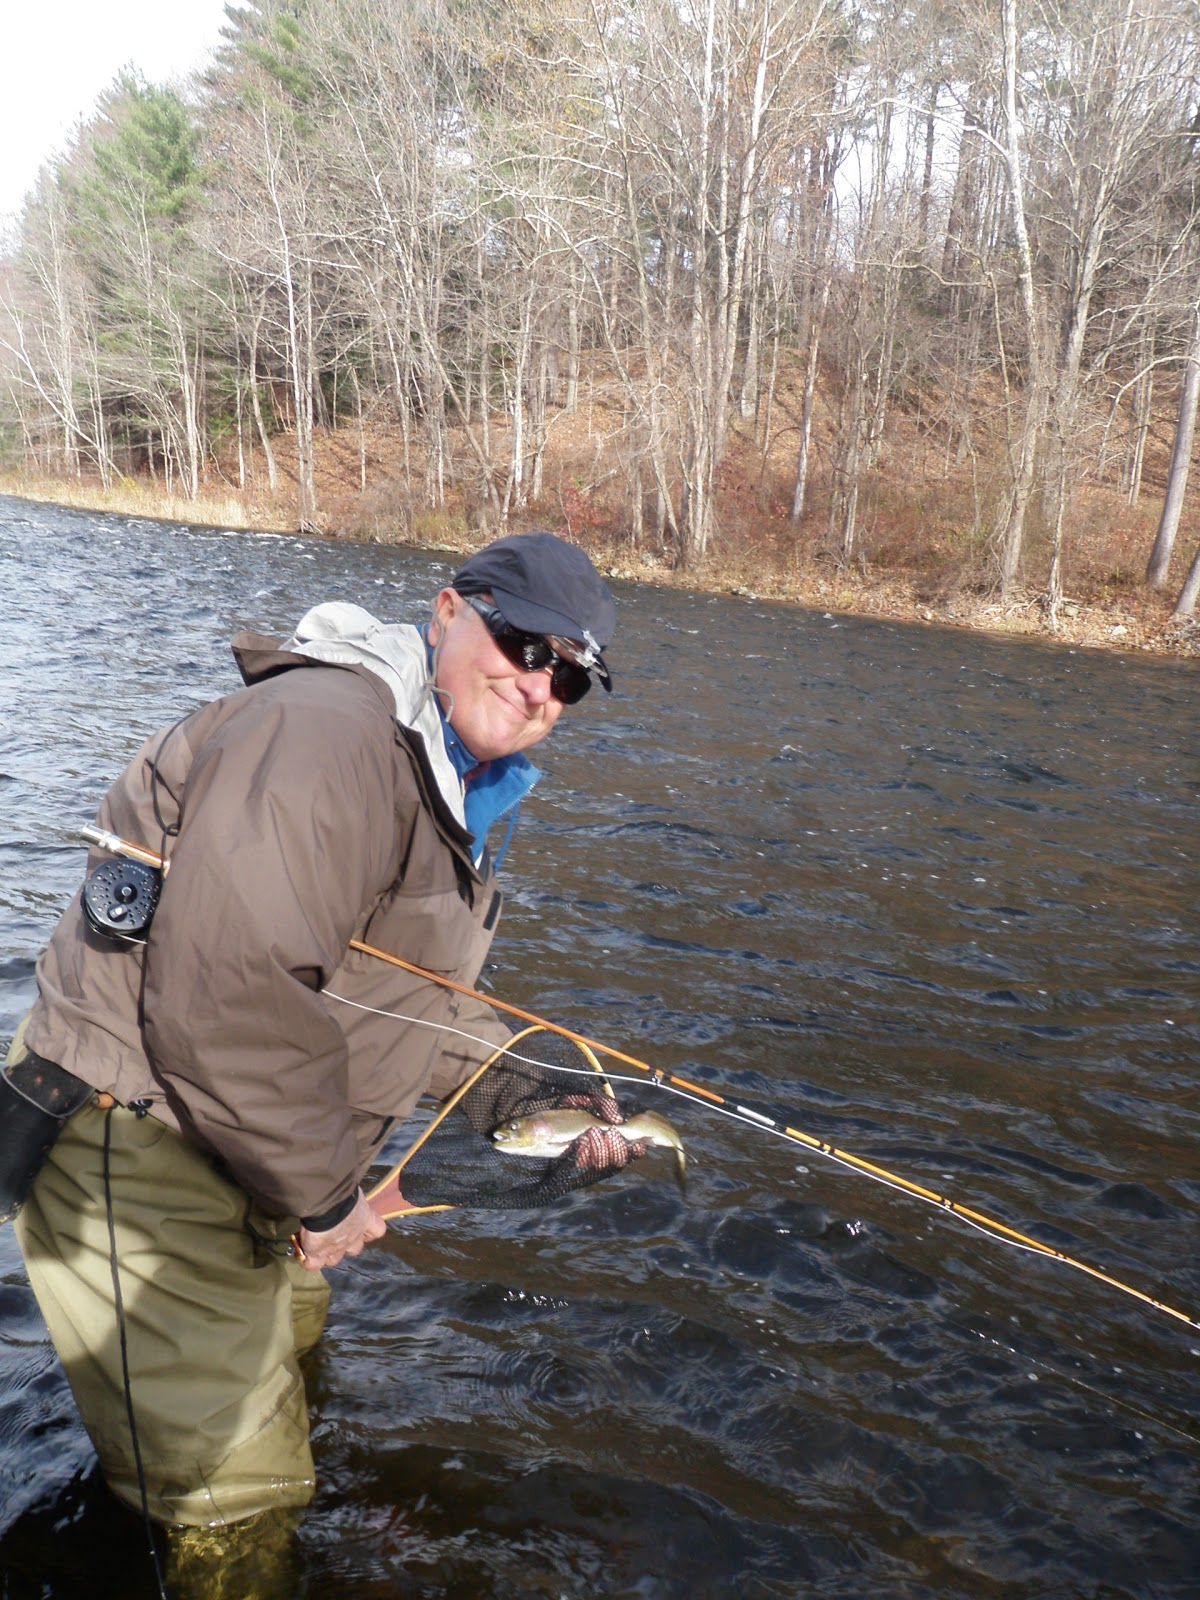 Fly fish new england fishing reports next stop for Farmington river fishing report